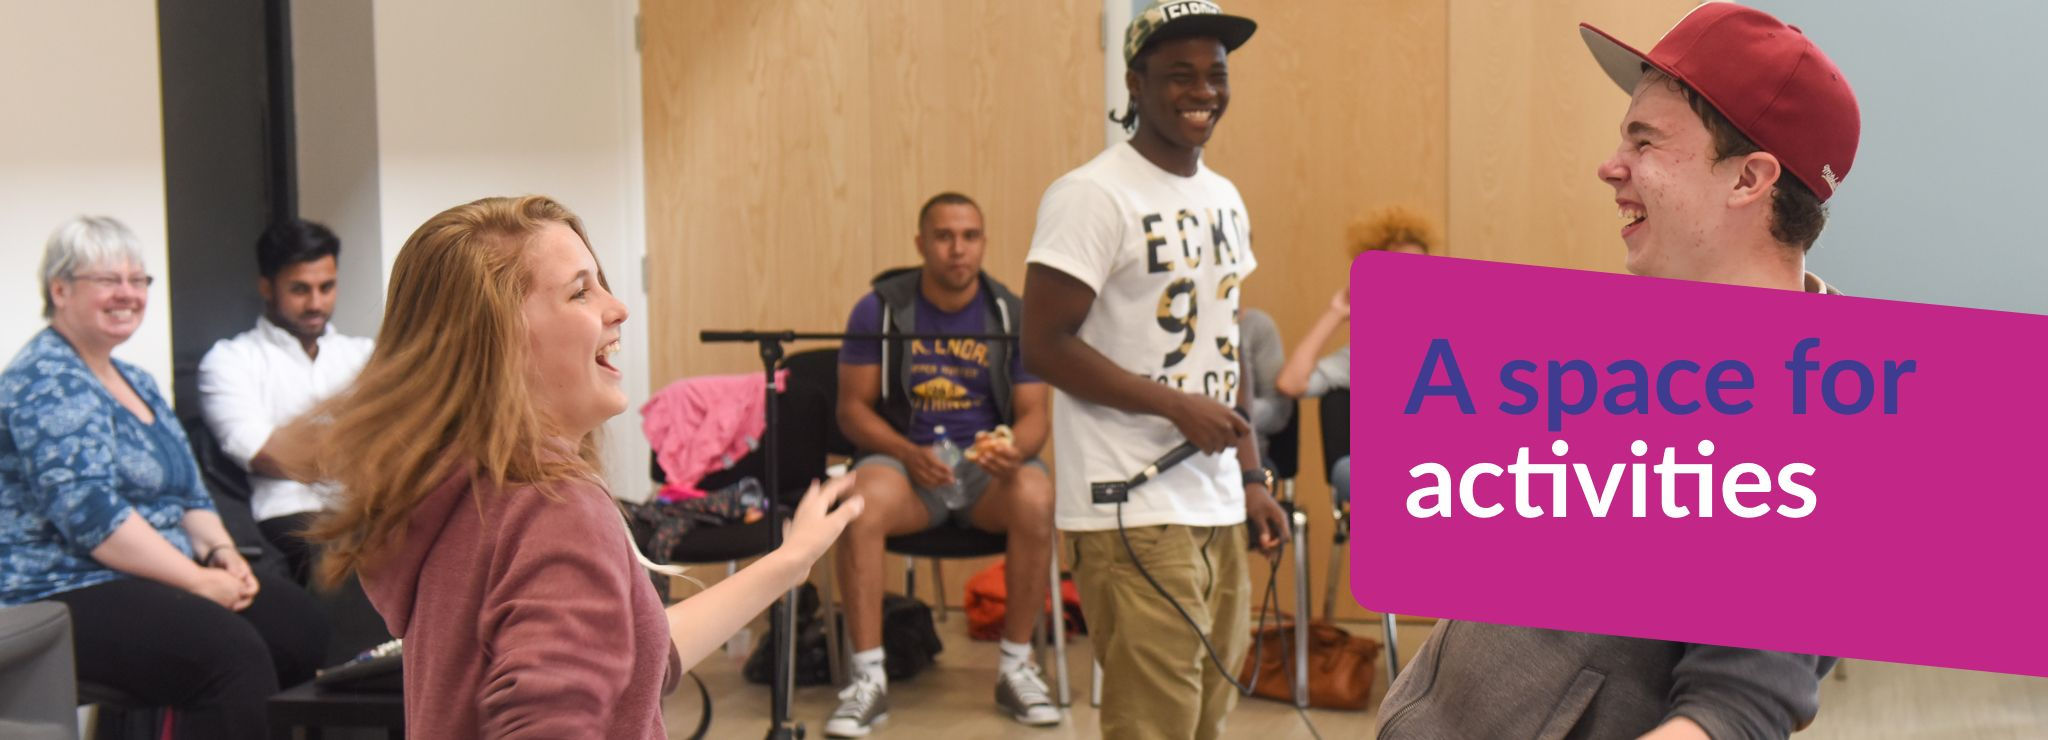 Text reads: A space for activities - image shows some young people performing some music together.